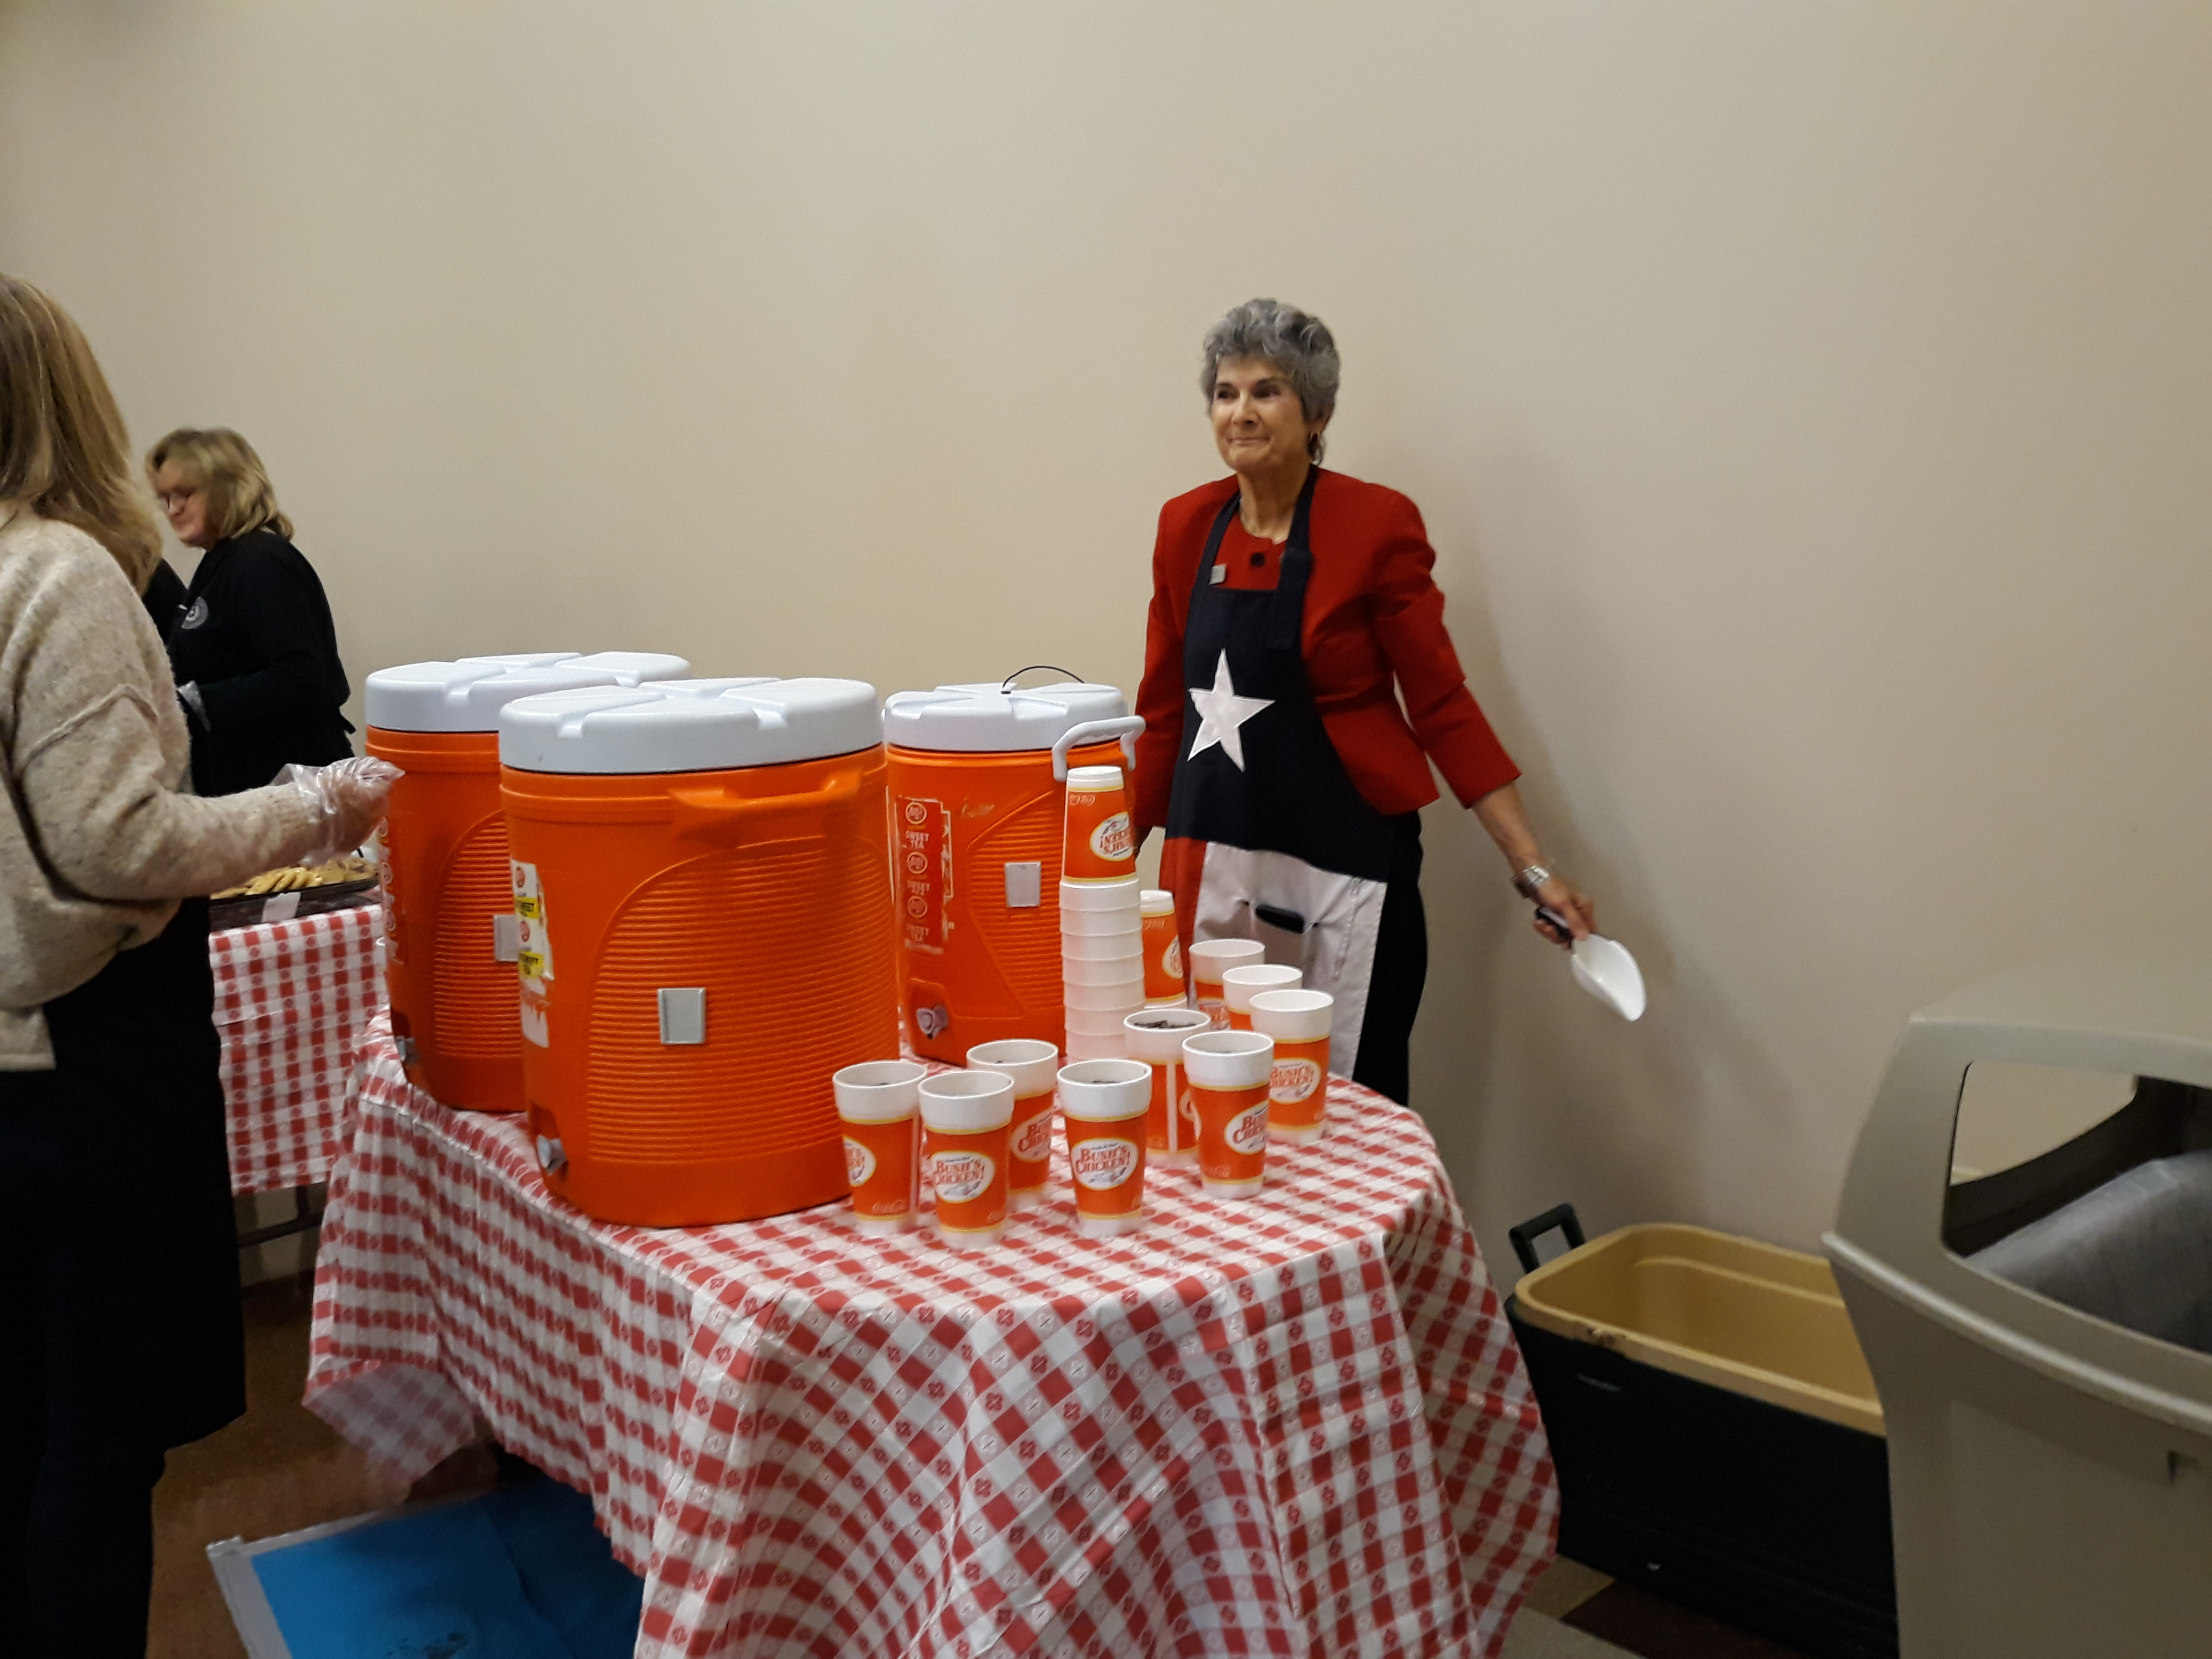 Commissioner Cook waits behind the large orange dispensers with white lids to refill glasses with sweet and unsweetened tea.